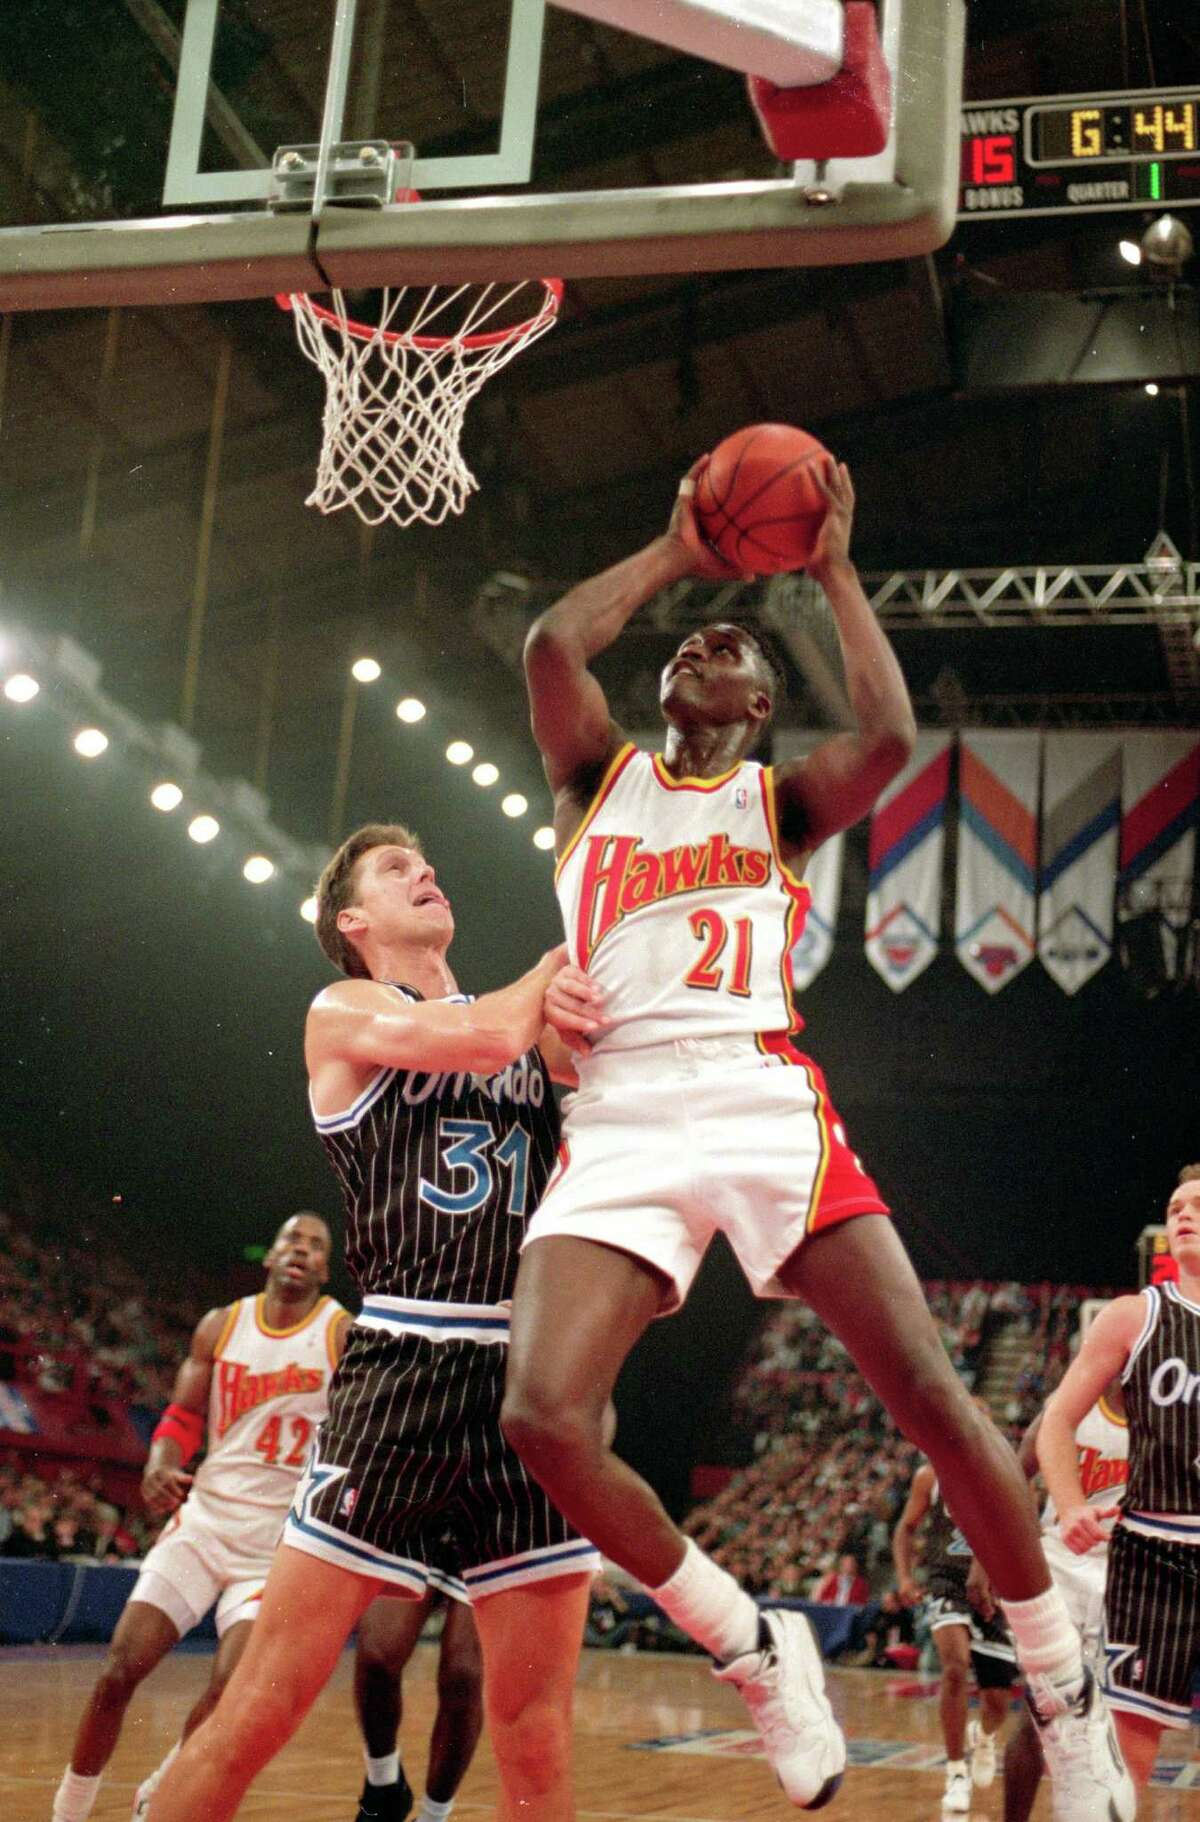 Dominique Wilkins of the Atlanta Hawks drives inside for a shot during a preseason game against the Orlando Magic at the Wembley Stadium in London, England, on Oct. 31, 1993.